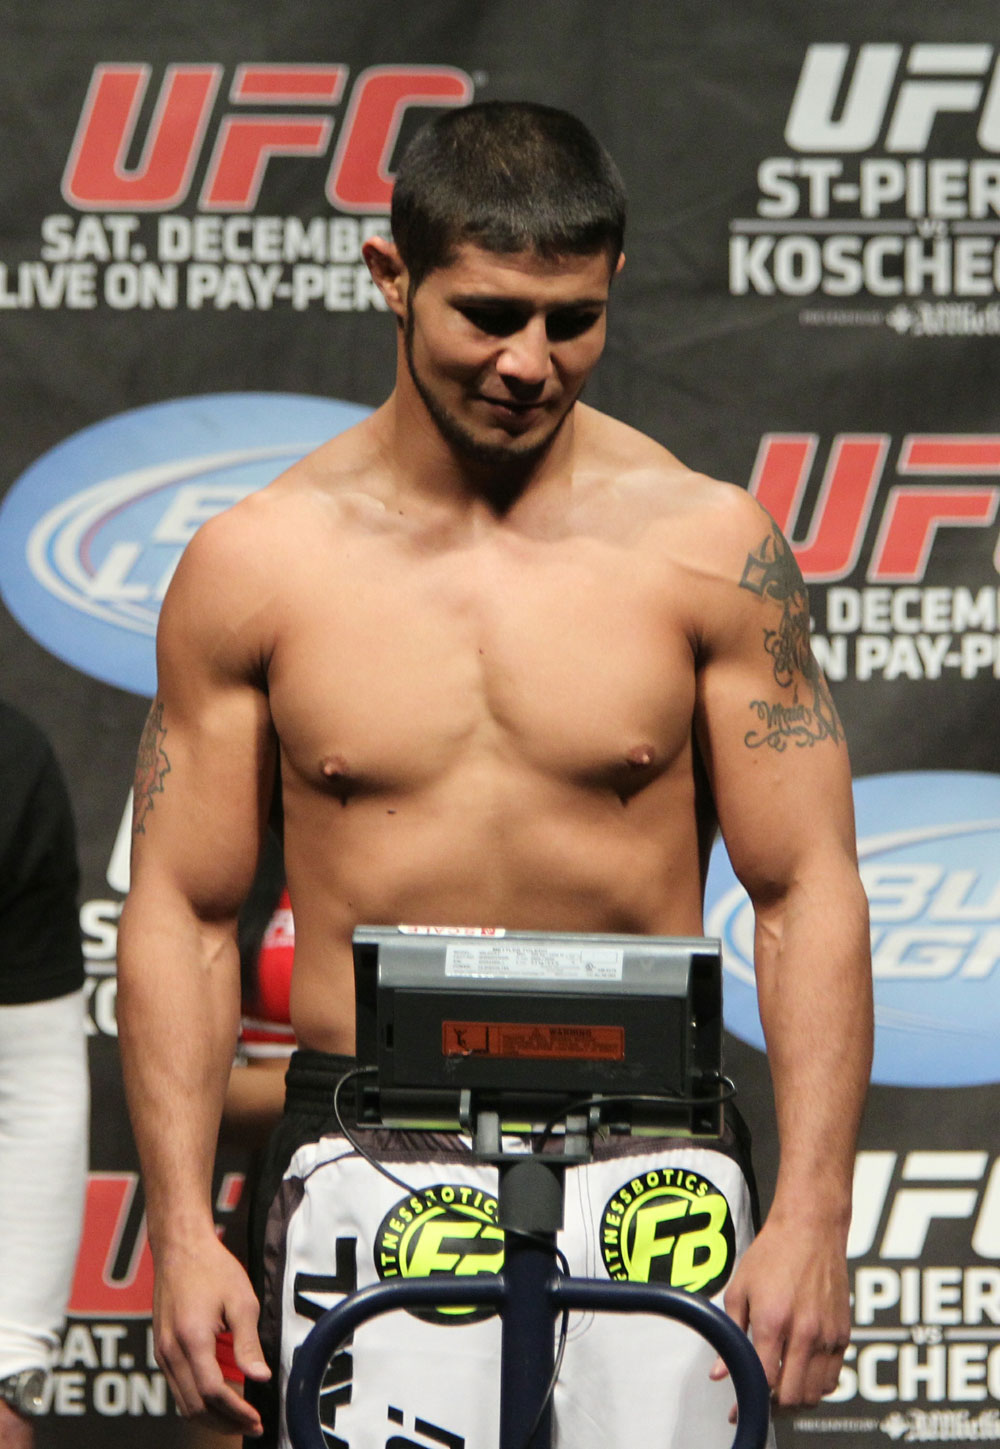 UFC 124 Weigh-in: Joe Stevenson weighs in at 155.5lbs.